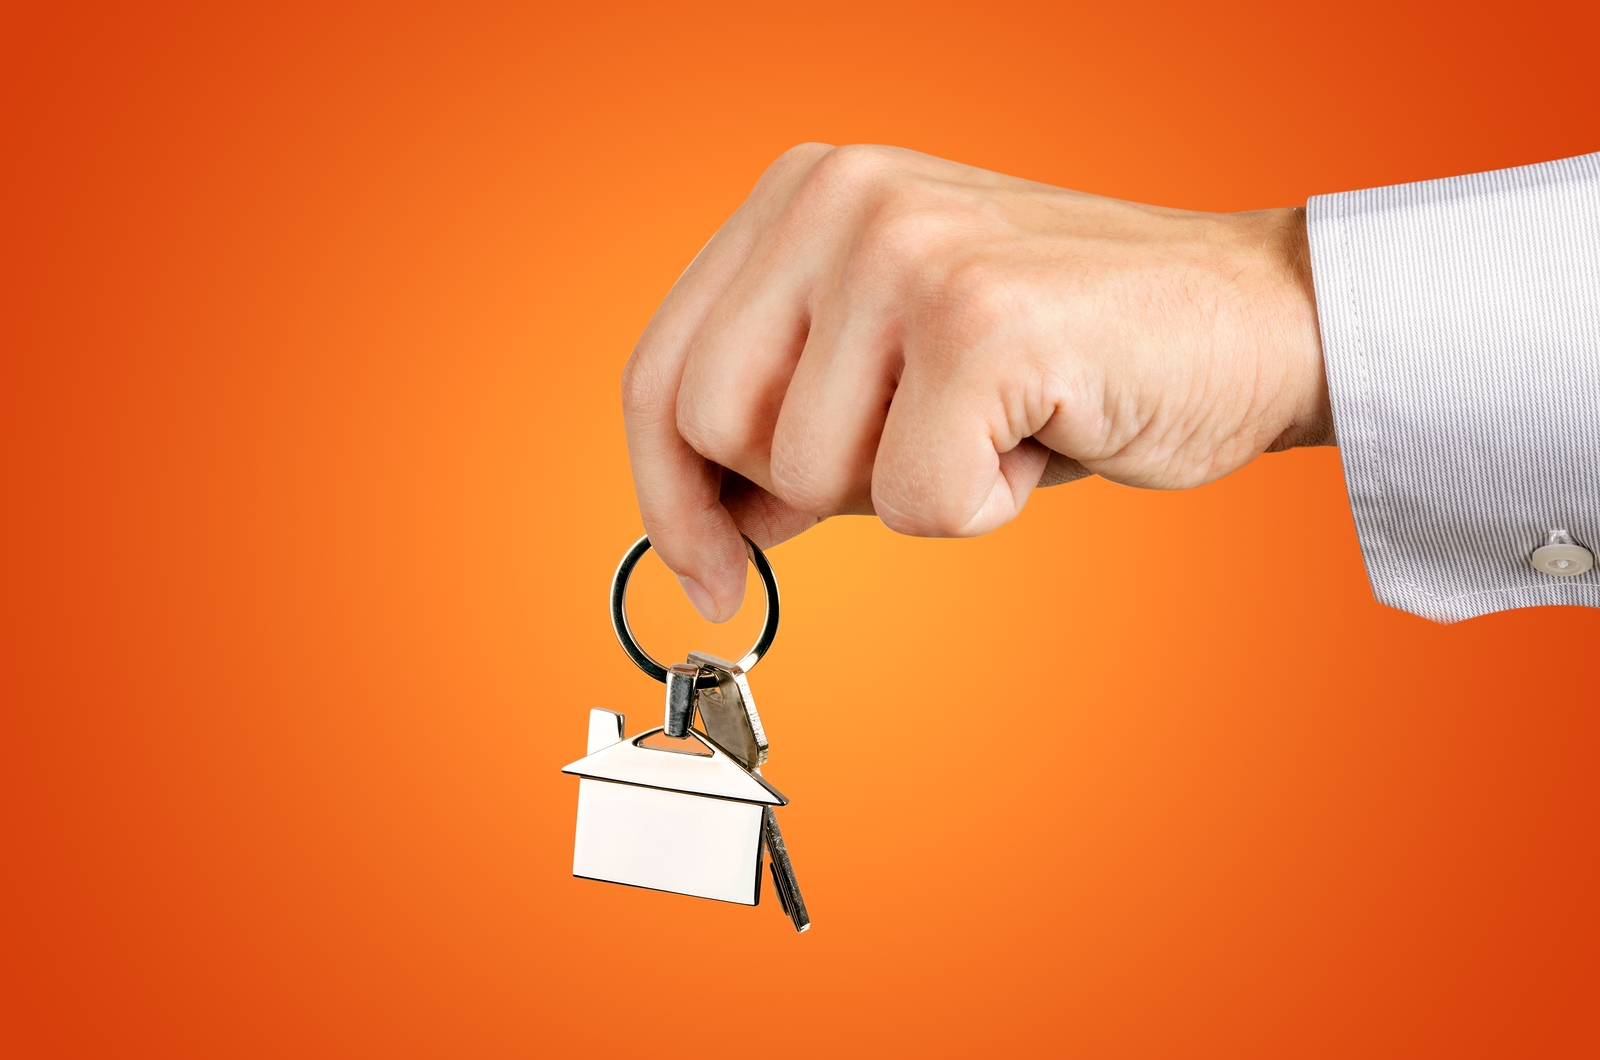 bigstock-Man-Hand-Holding-Keys-With-To-98084807